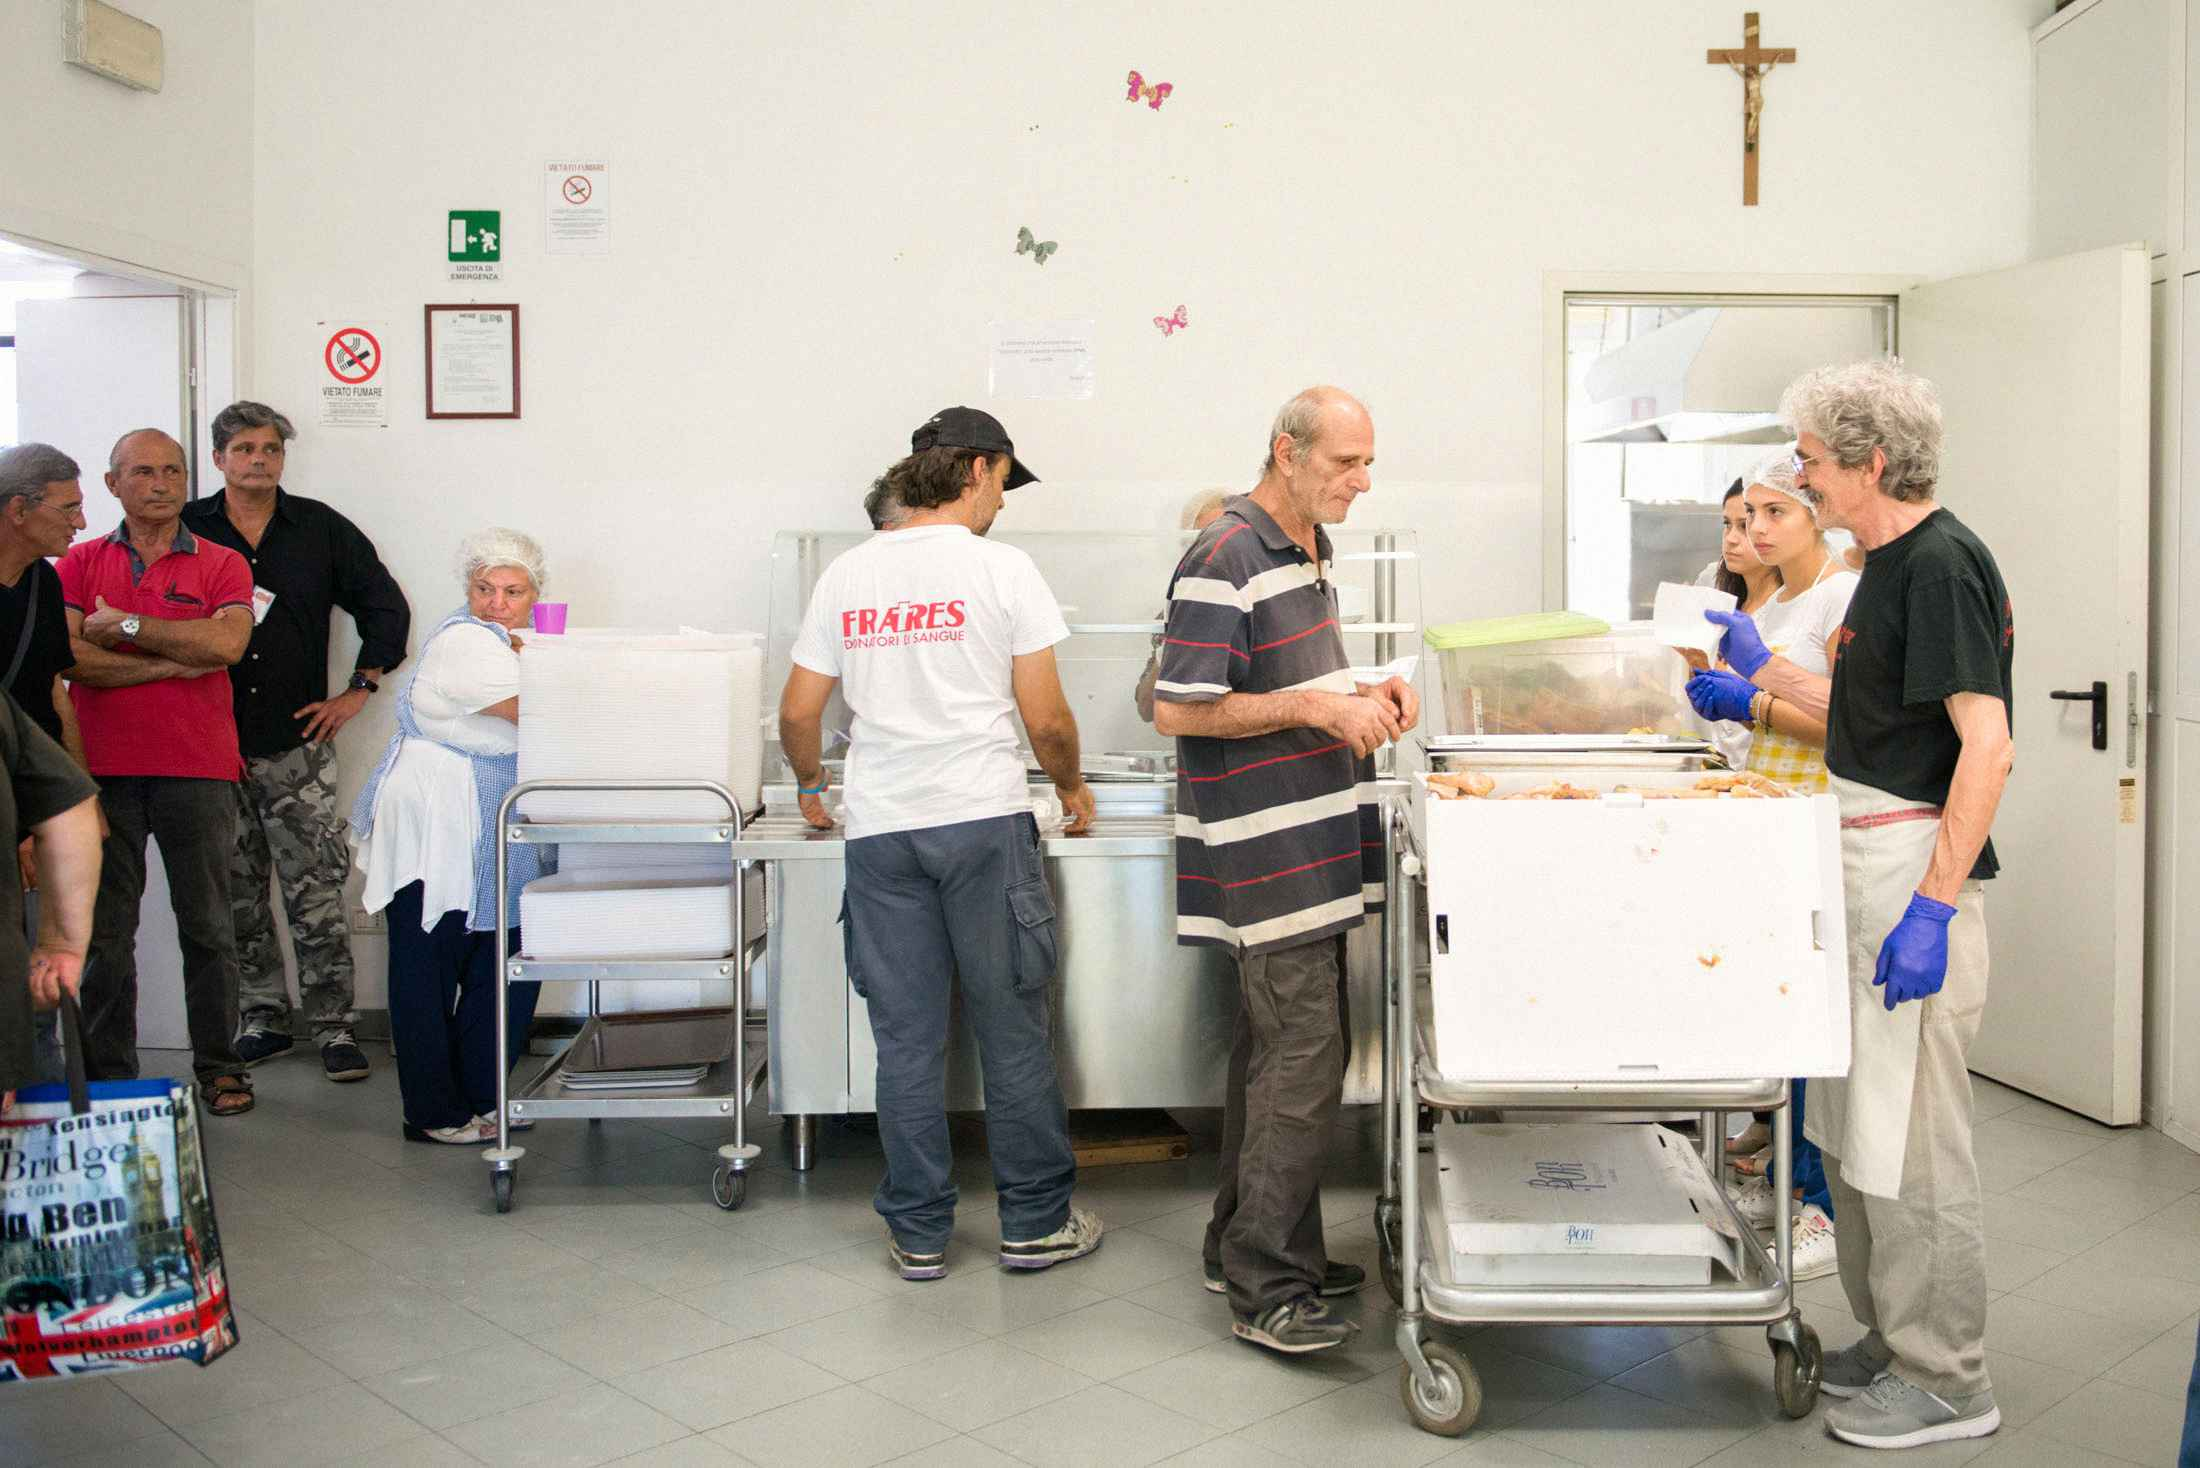 As Poverty Surges in Italy, Populists Propose a 'Citizens' Income'